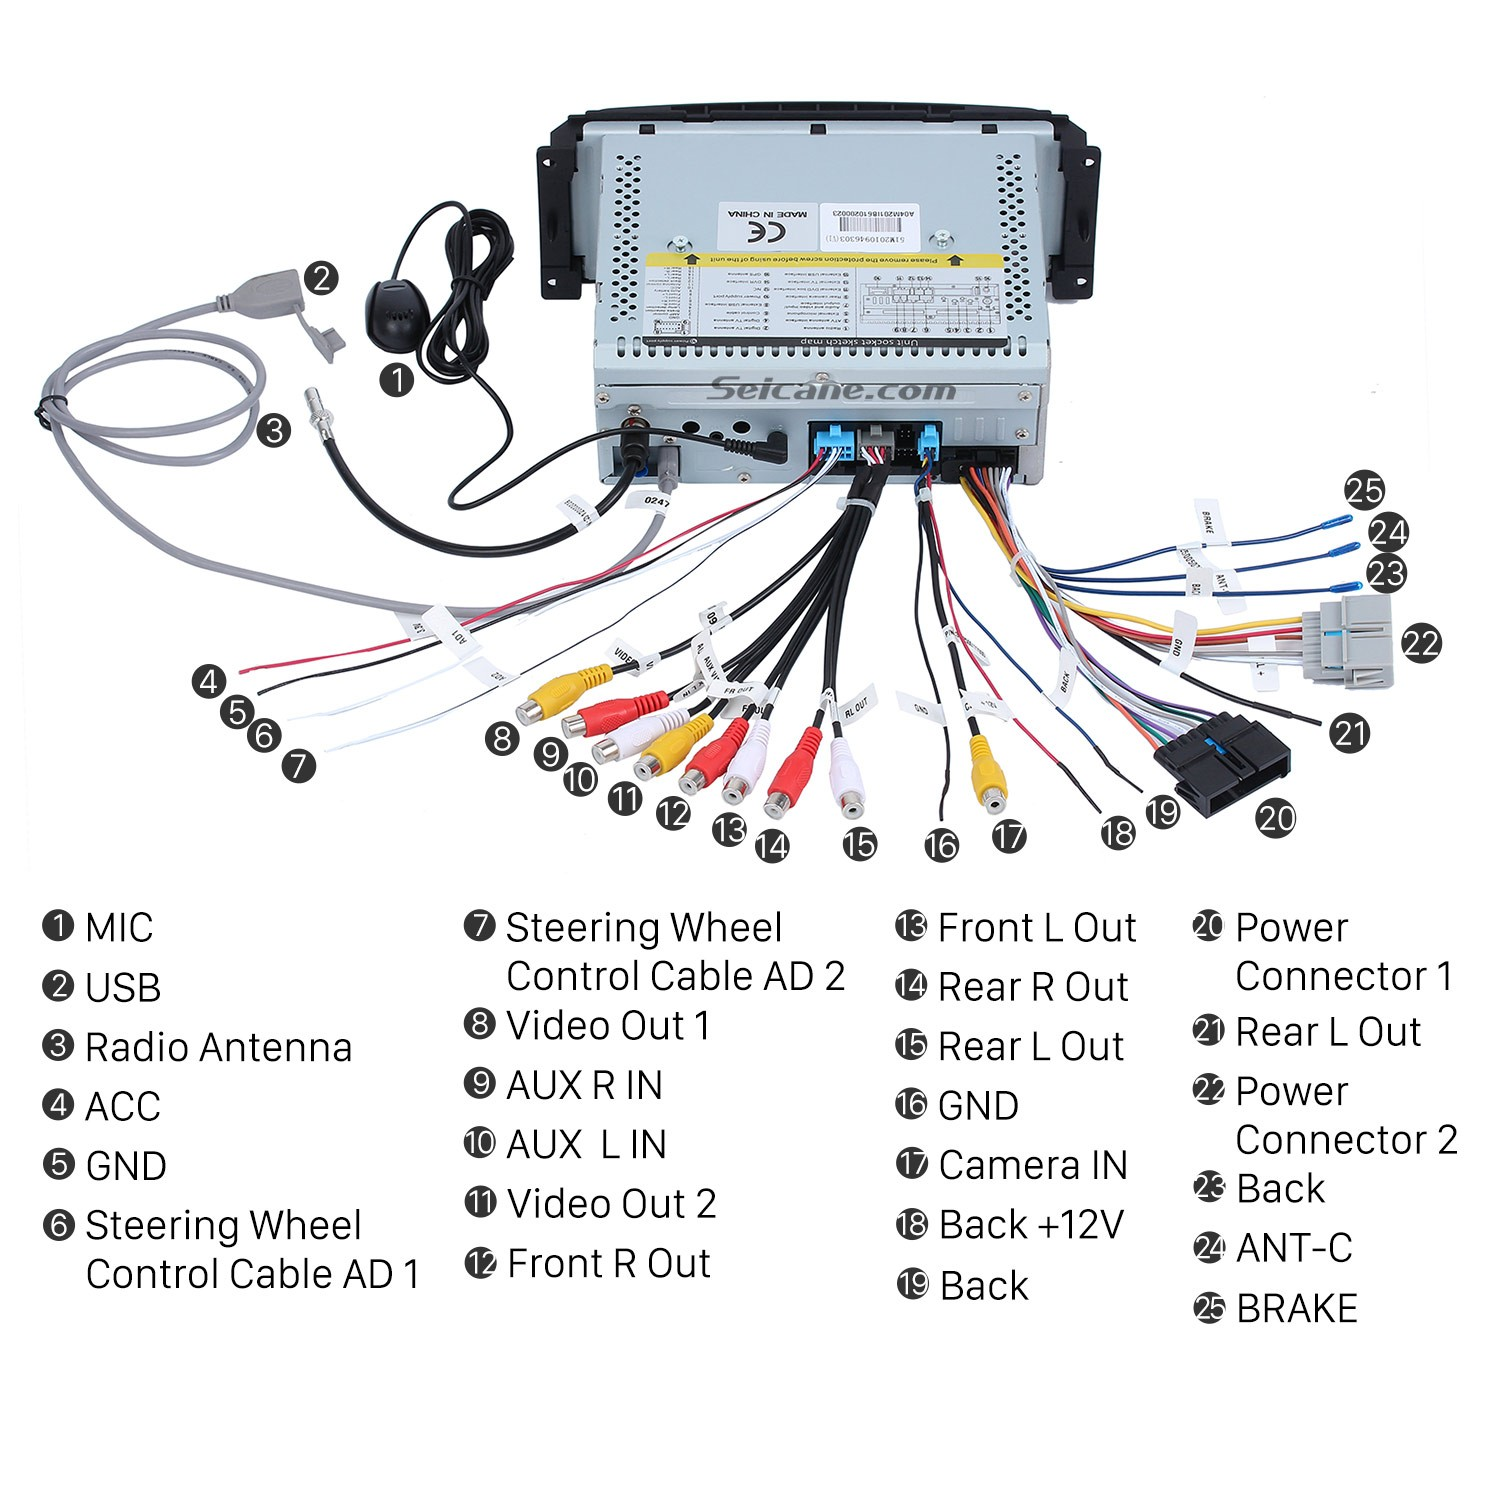 2006 jeep liberty radio wiring diagram vw golf mk2 central locking how to install a 2002 2007 stereo fix